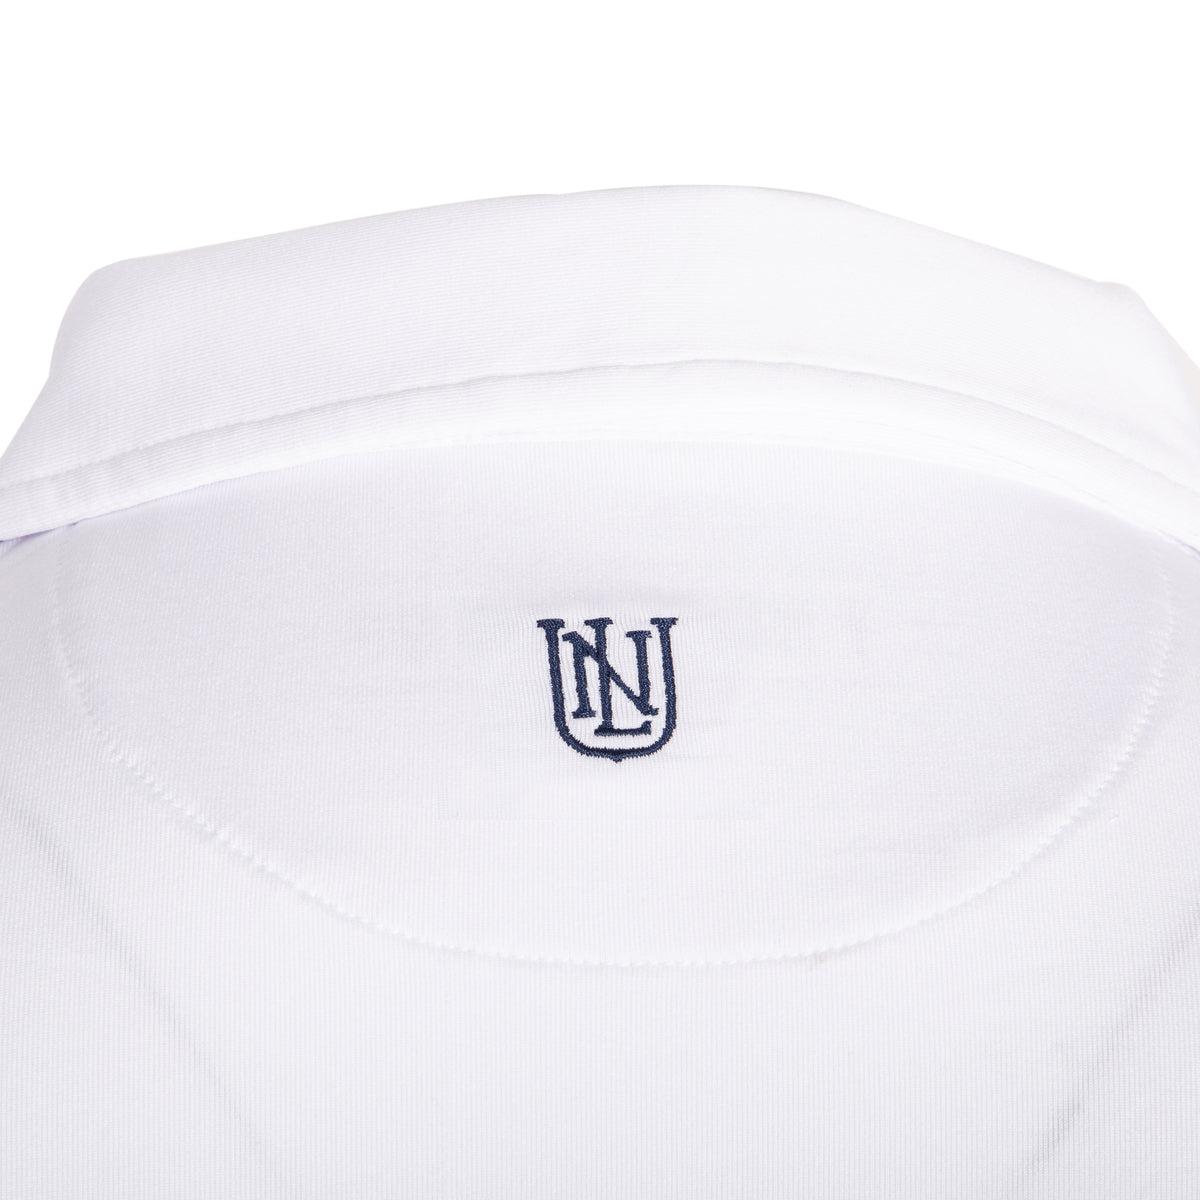 NLU Performance Polo | White w/ Navy Logo